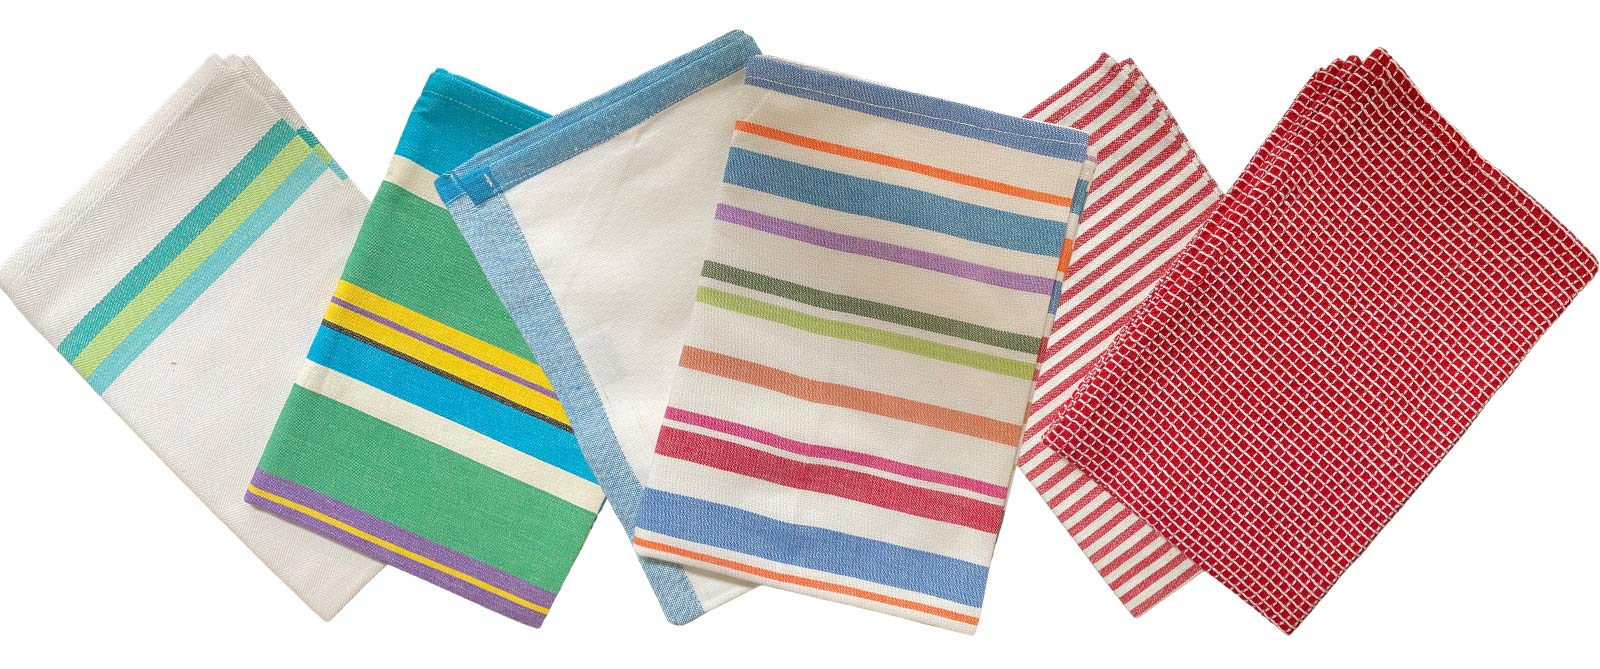 Tea Towel Sets